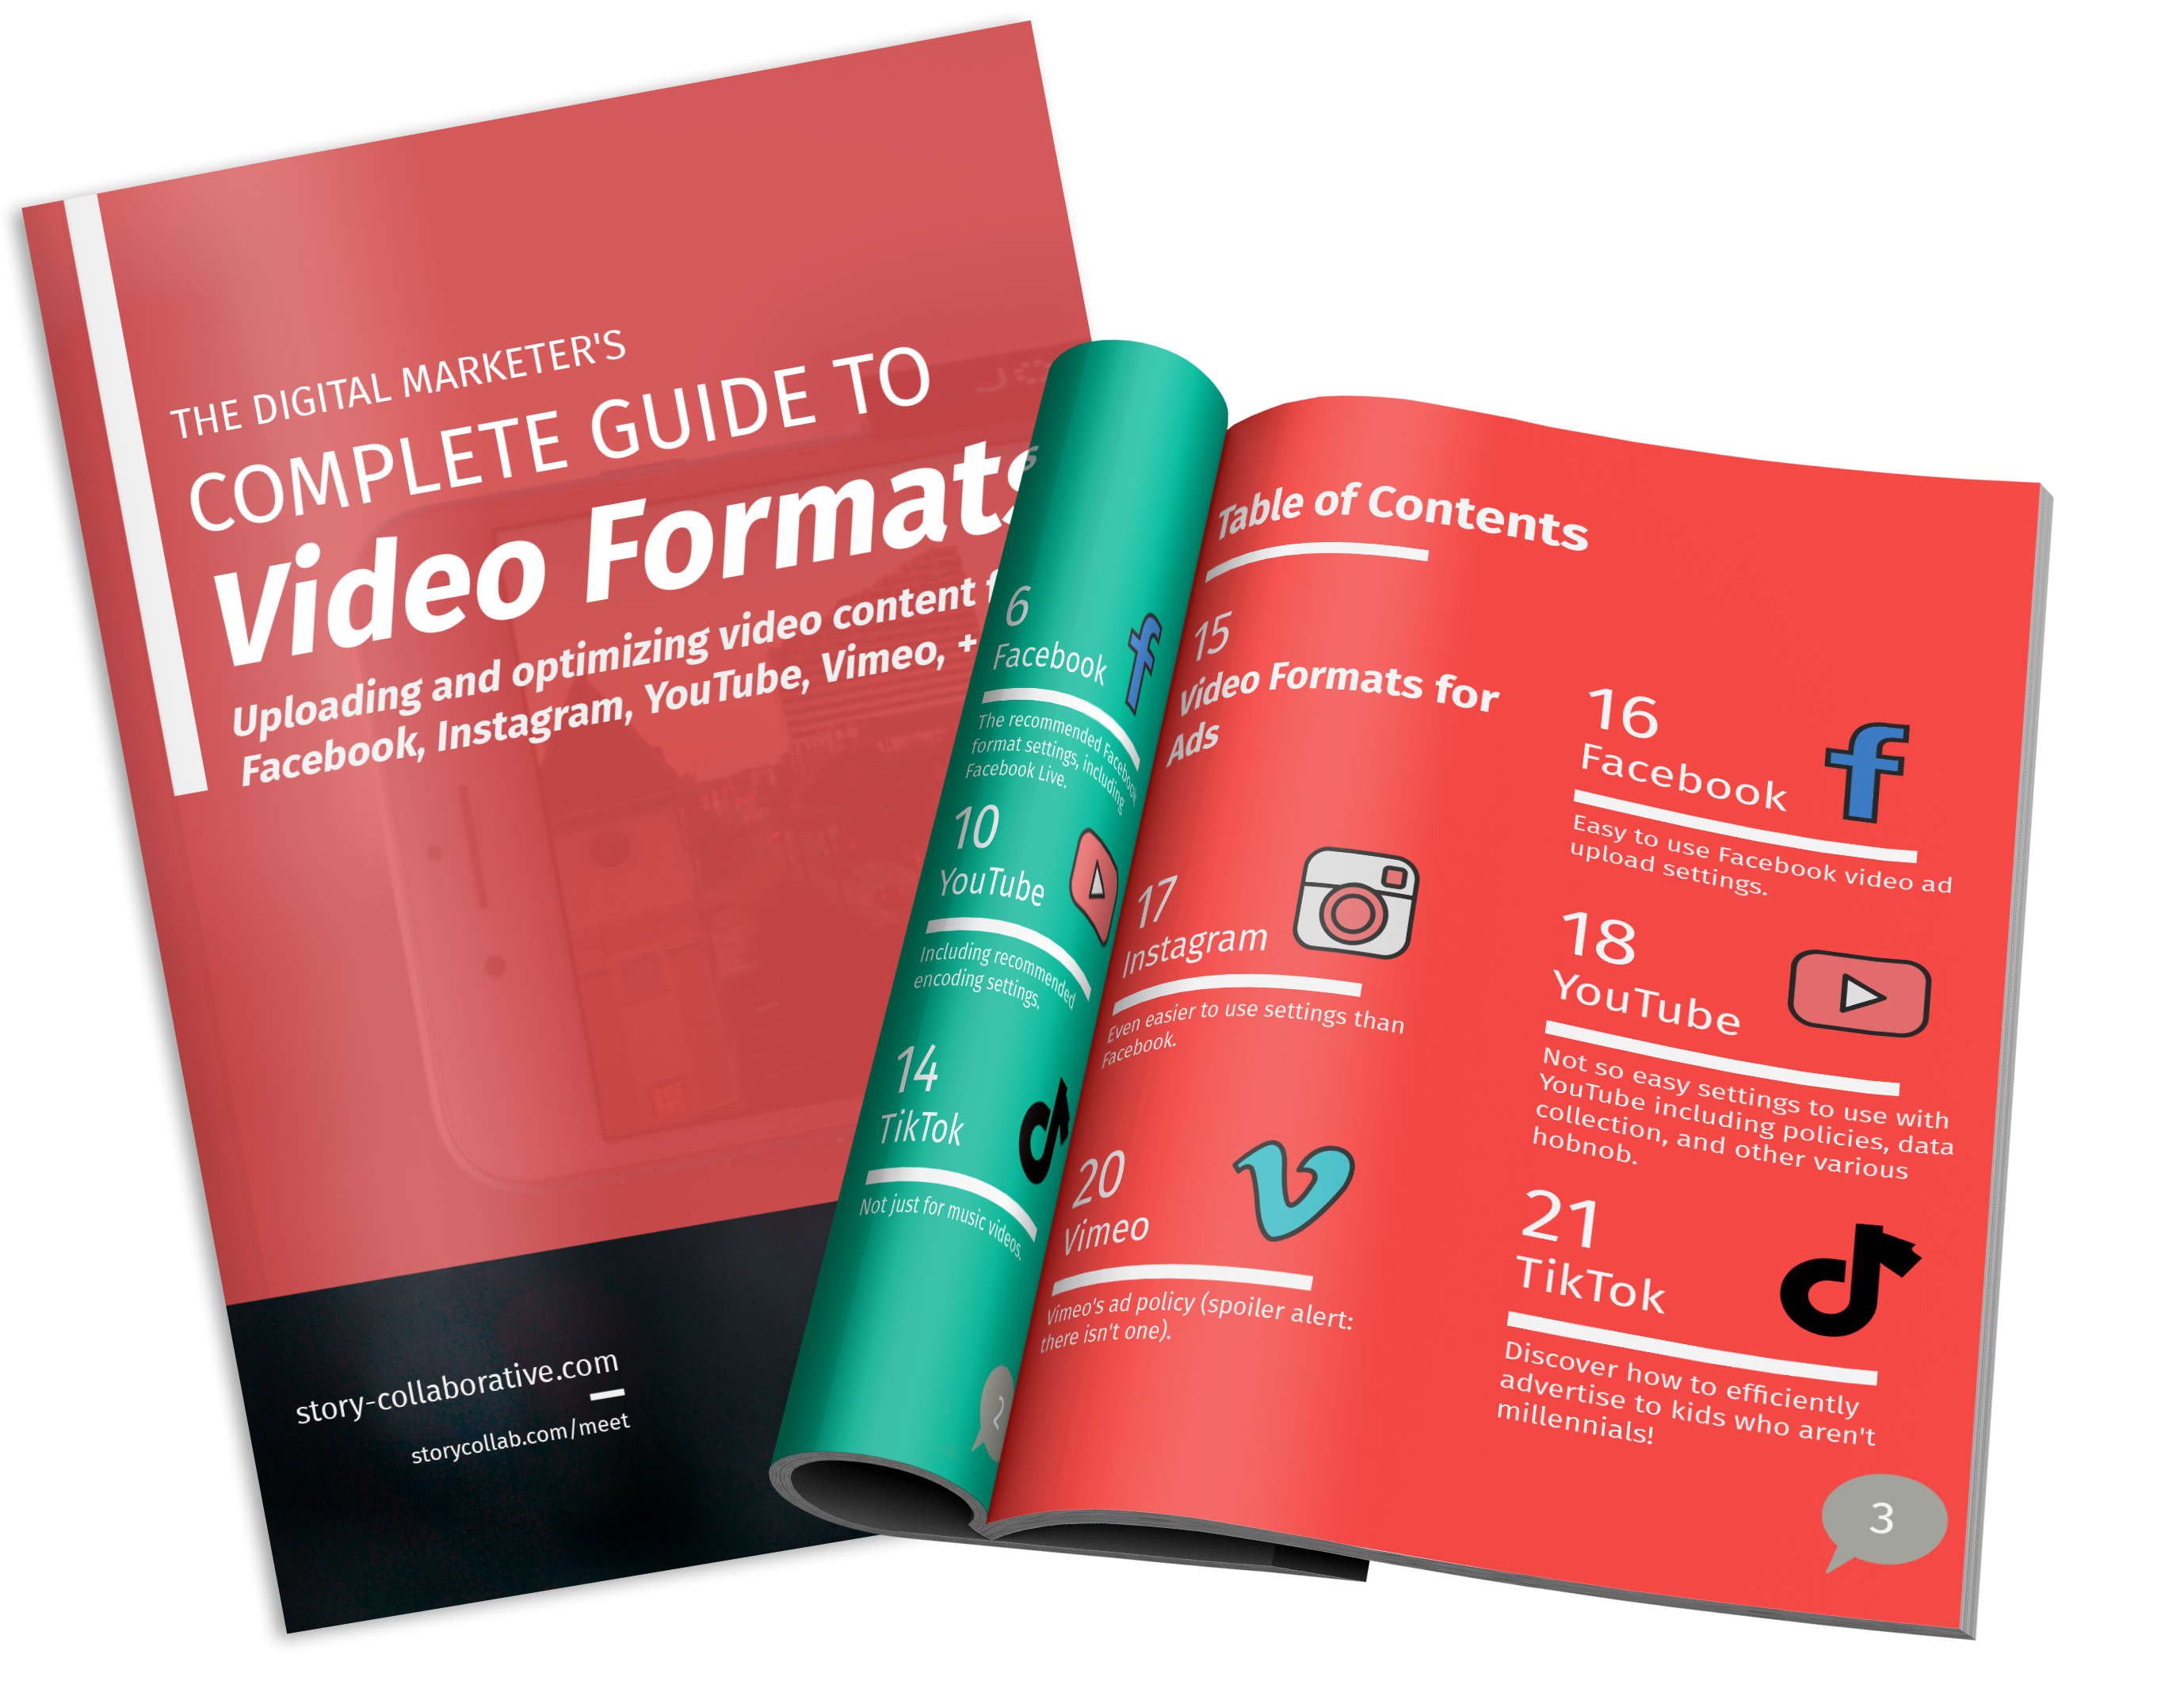 digital marketers guide to video formats